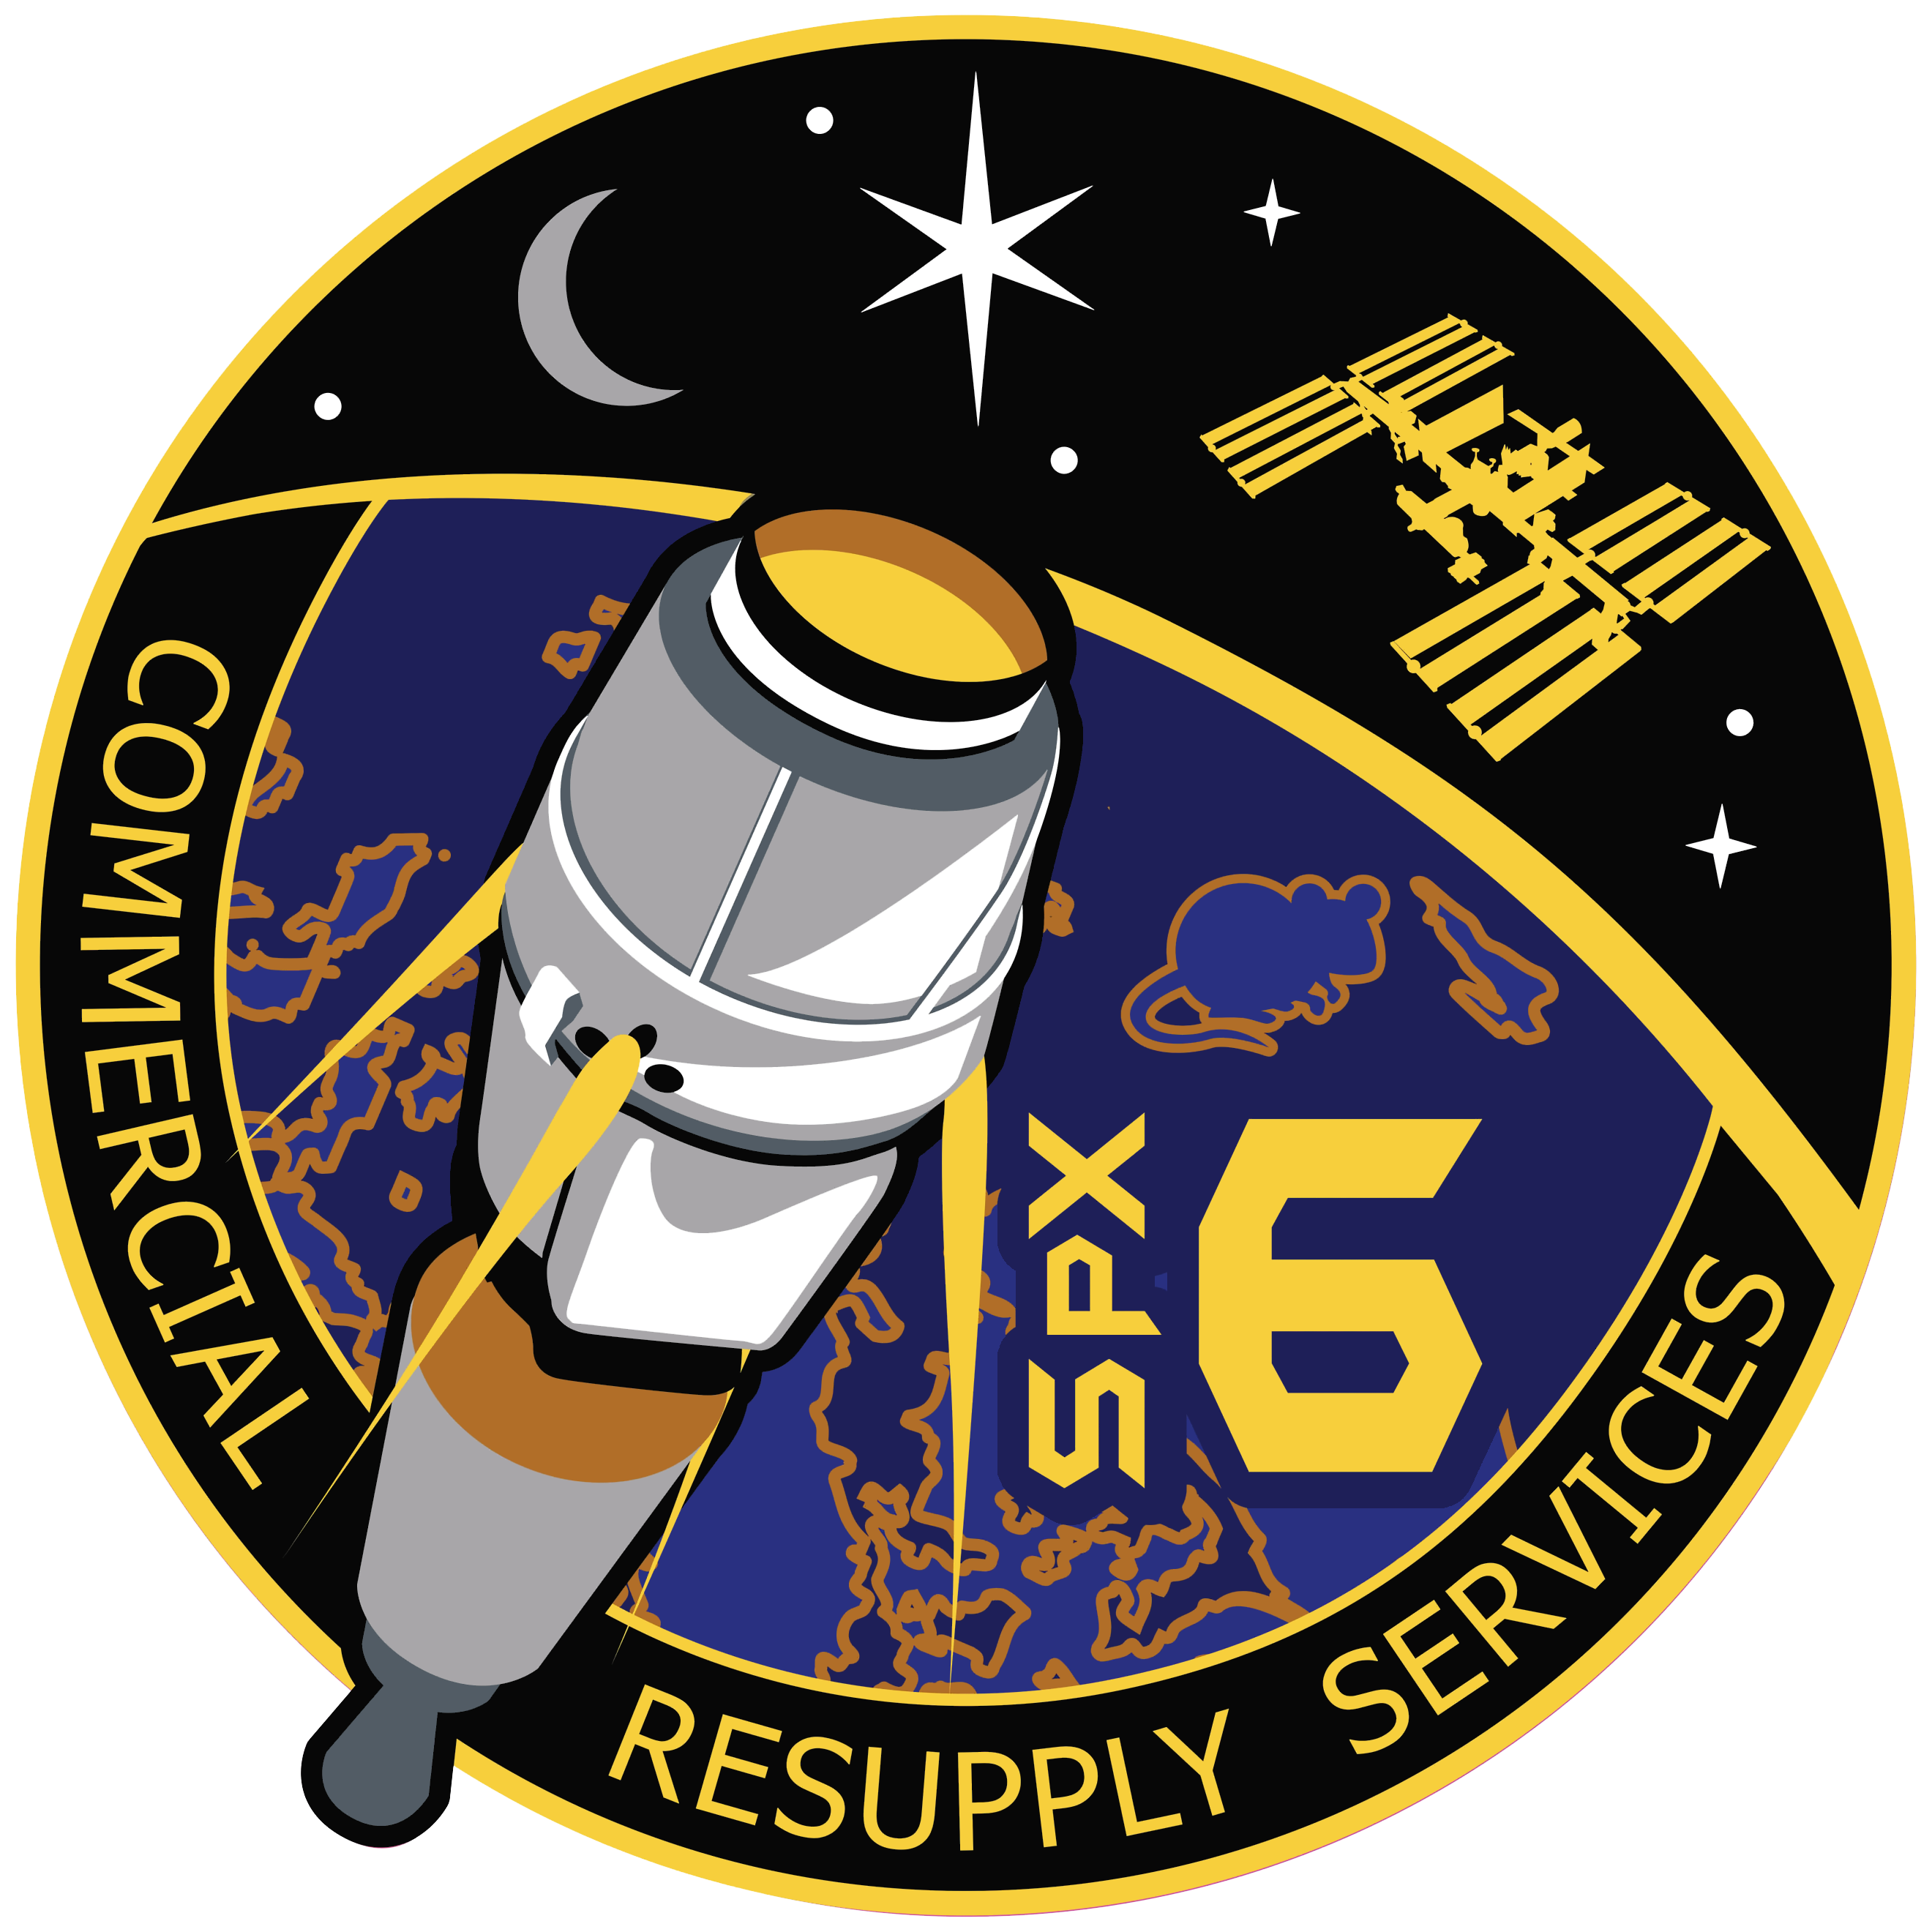 Nasa insignia for the. Clipart rocket plume